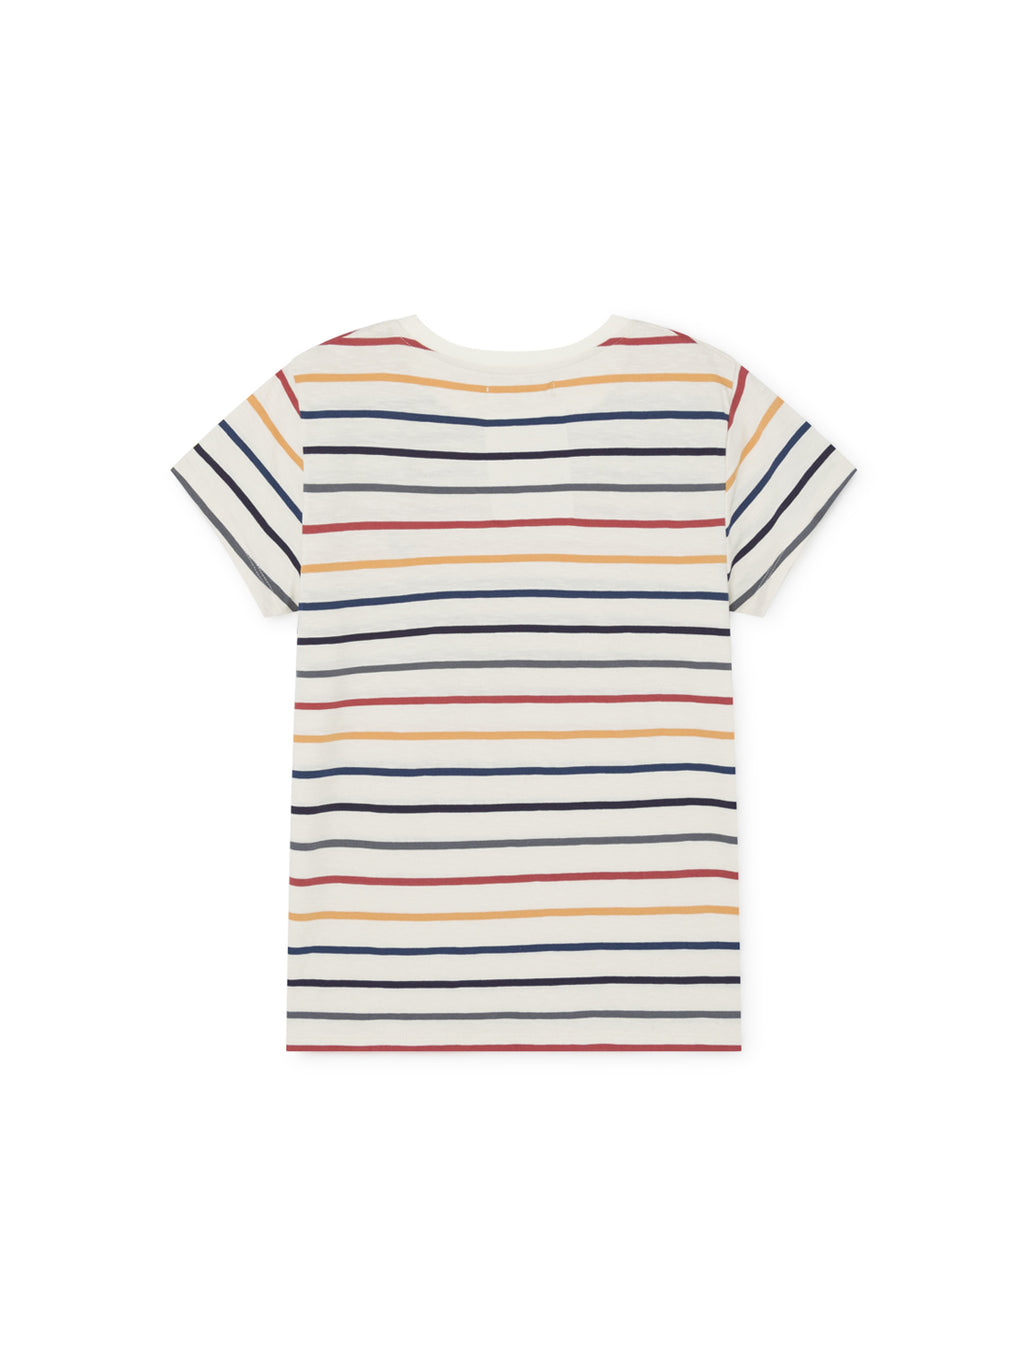 TWOTHIRDS Womens Tee: Kowama - Stripes back